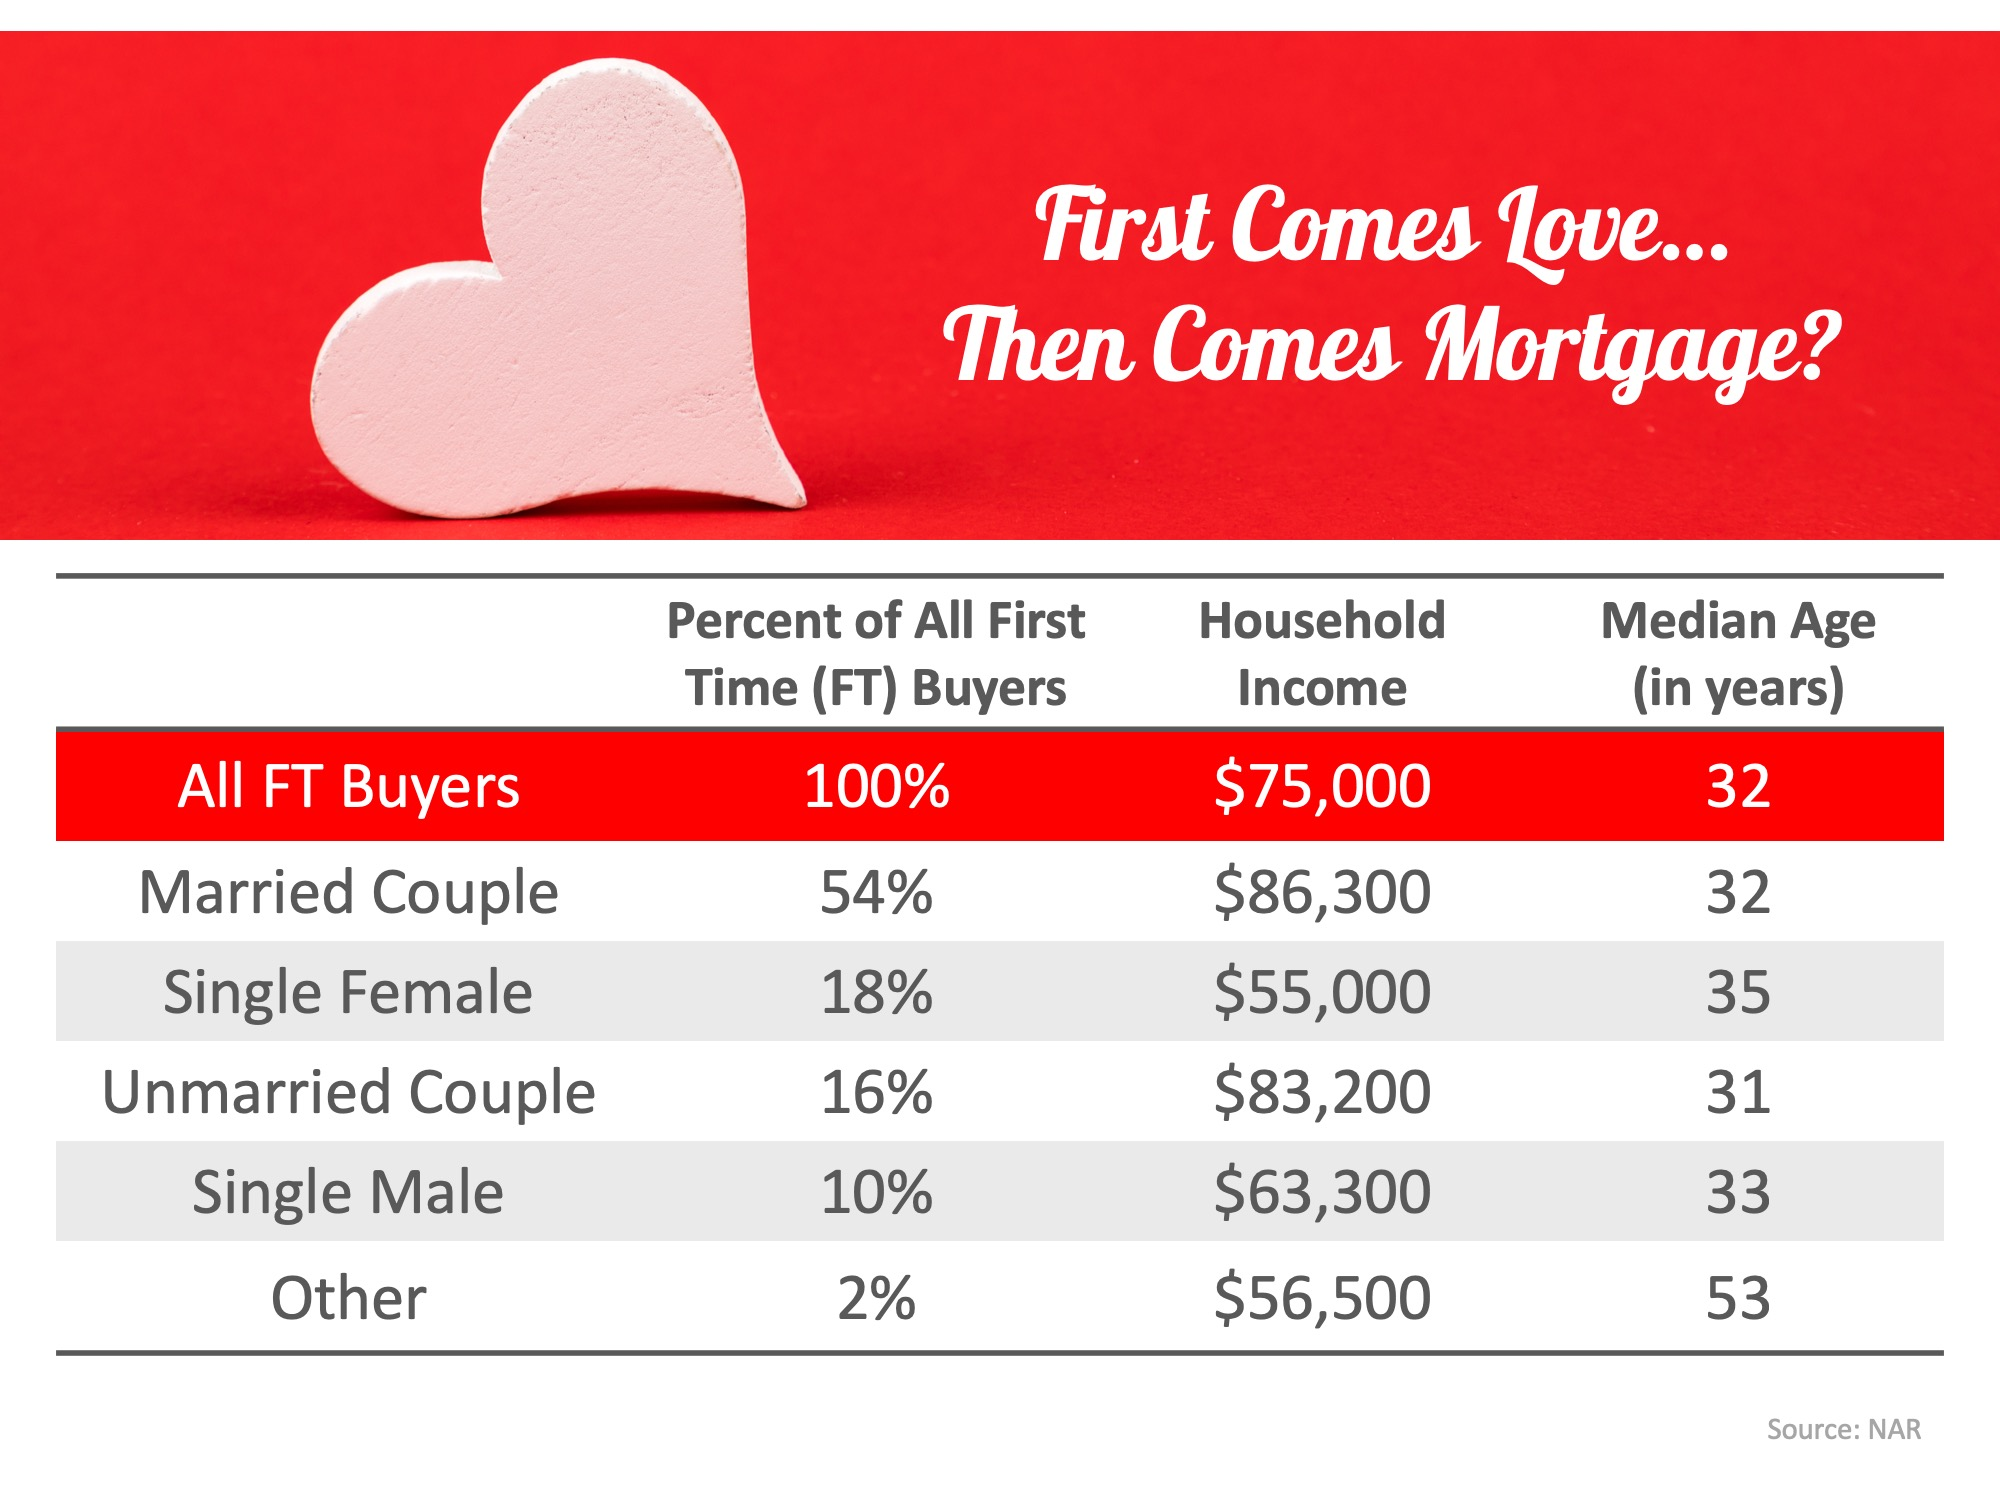 First Comes Love… Then Comes Mortgage? Couples Lead the Way | Simplifying The Market